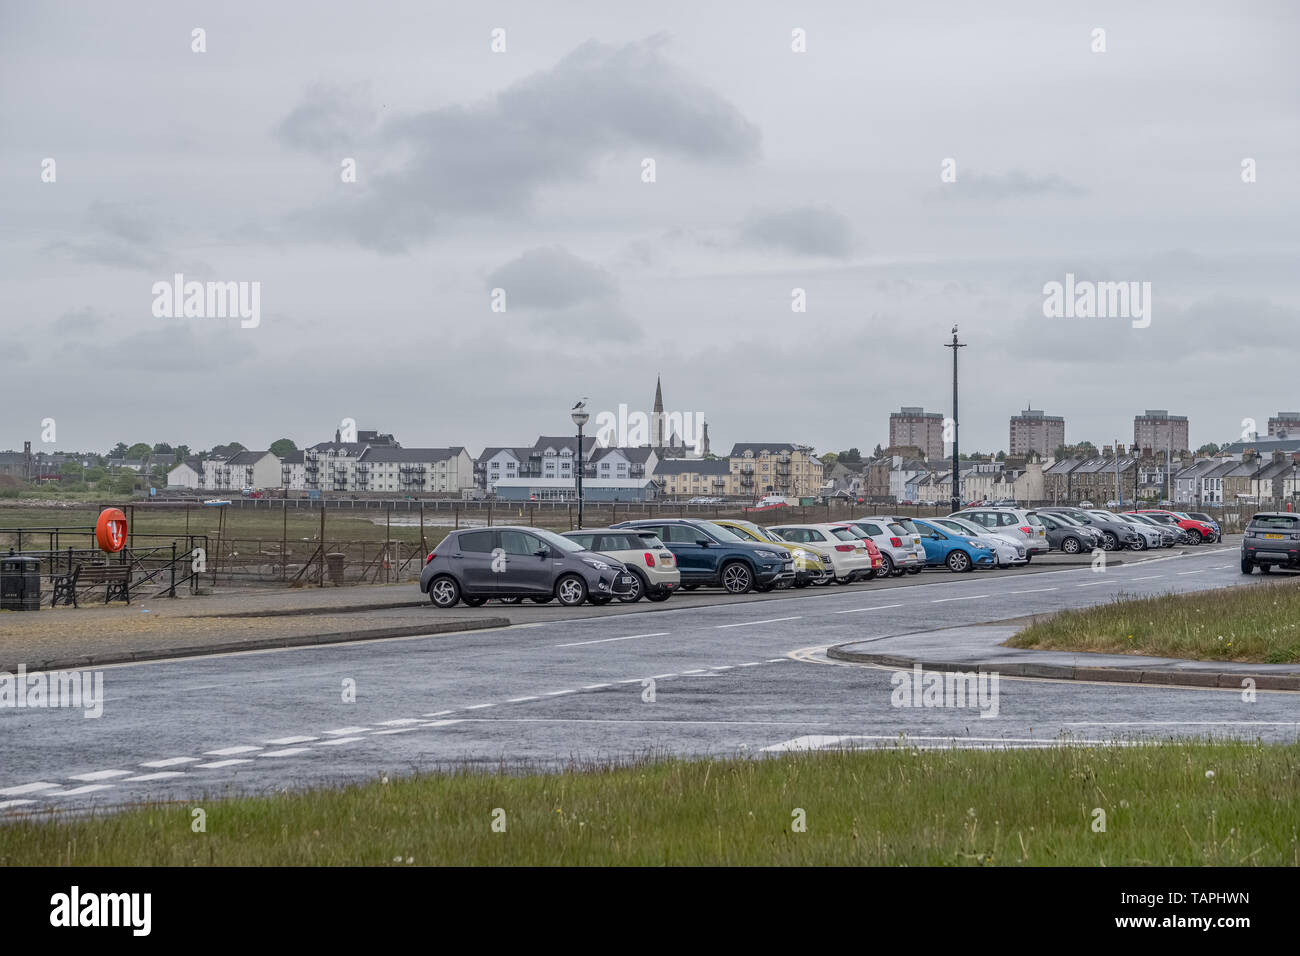 Irvine, Scotland, UK - May 25, 2019: Irvine Harbour North Ayrshire Scotland looking into the town centre with its high flats and church spier Stock Photo